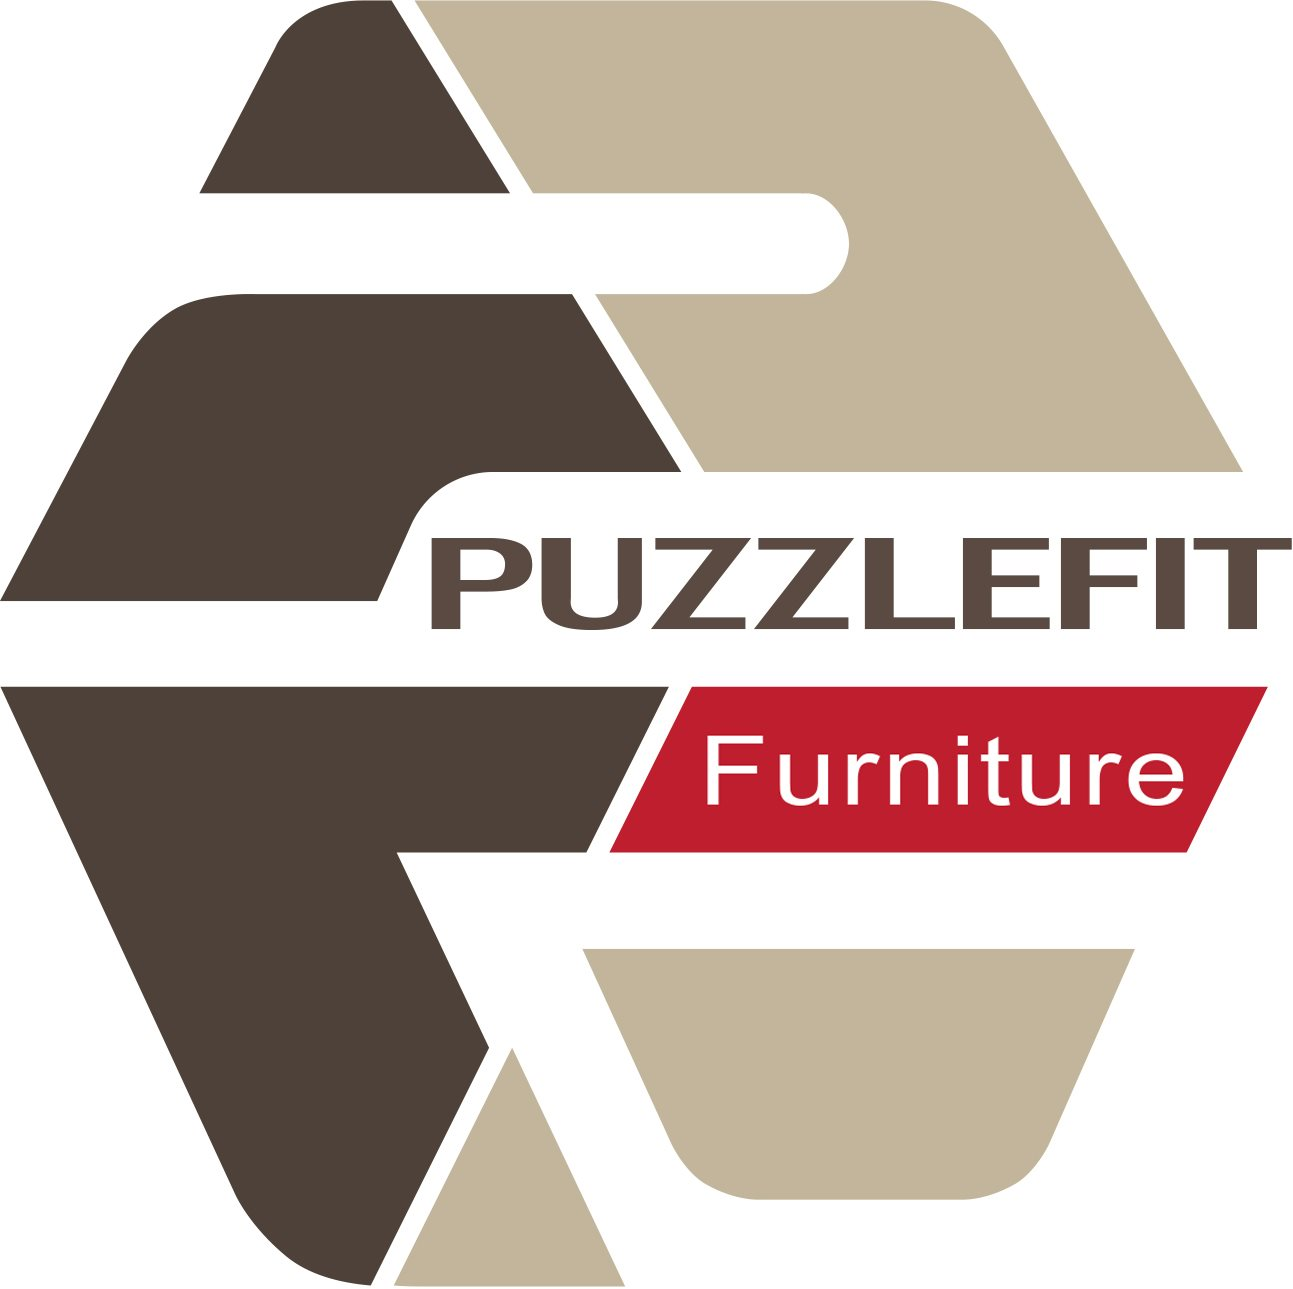 PUZZLEFIT FURNITURE CORPORATION